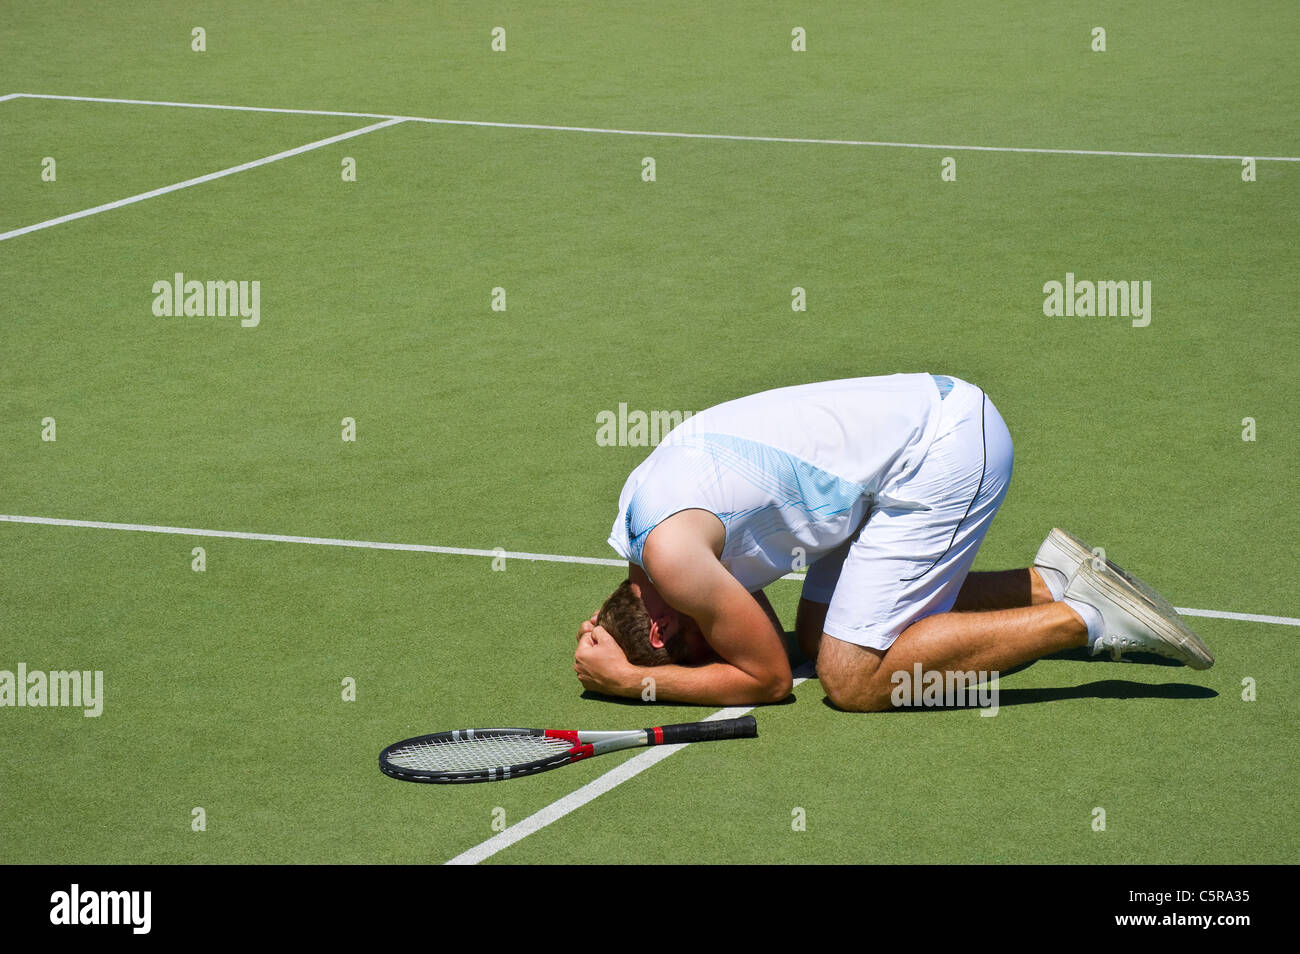 This tennis player injured on court. - Stock Image